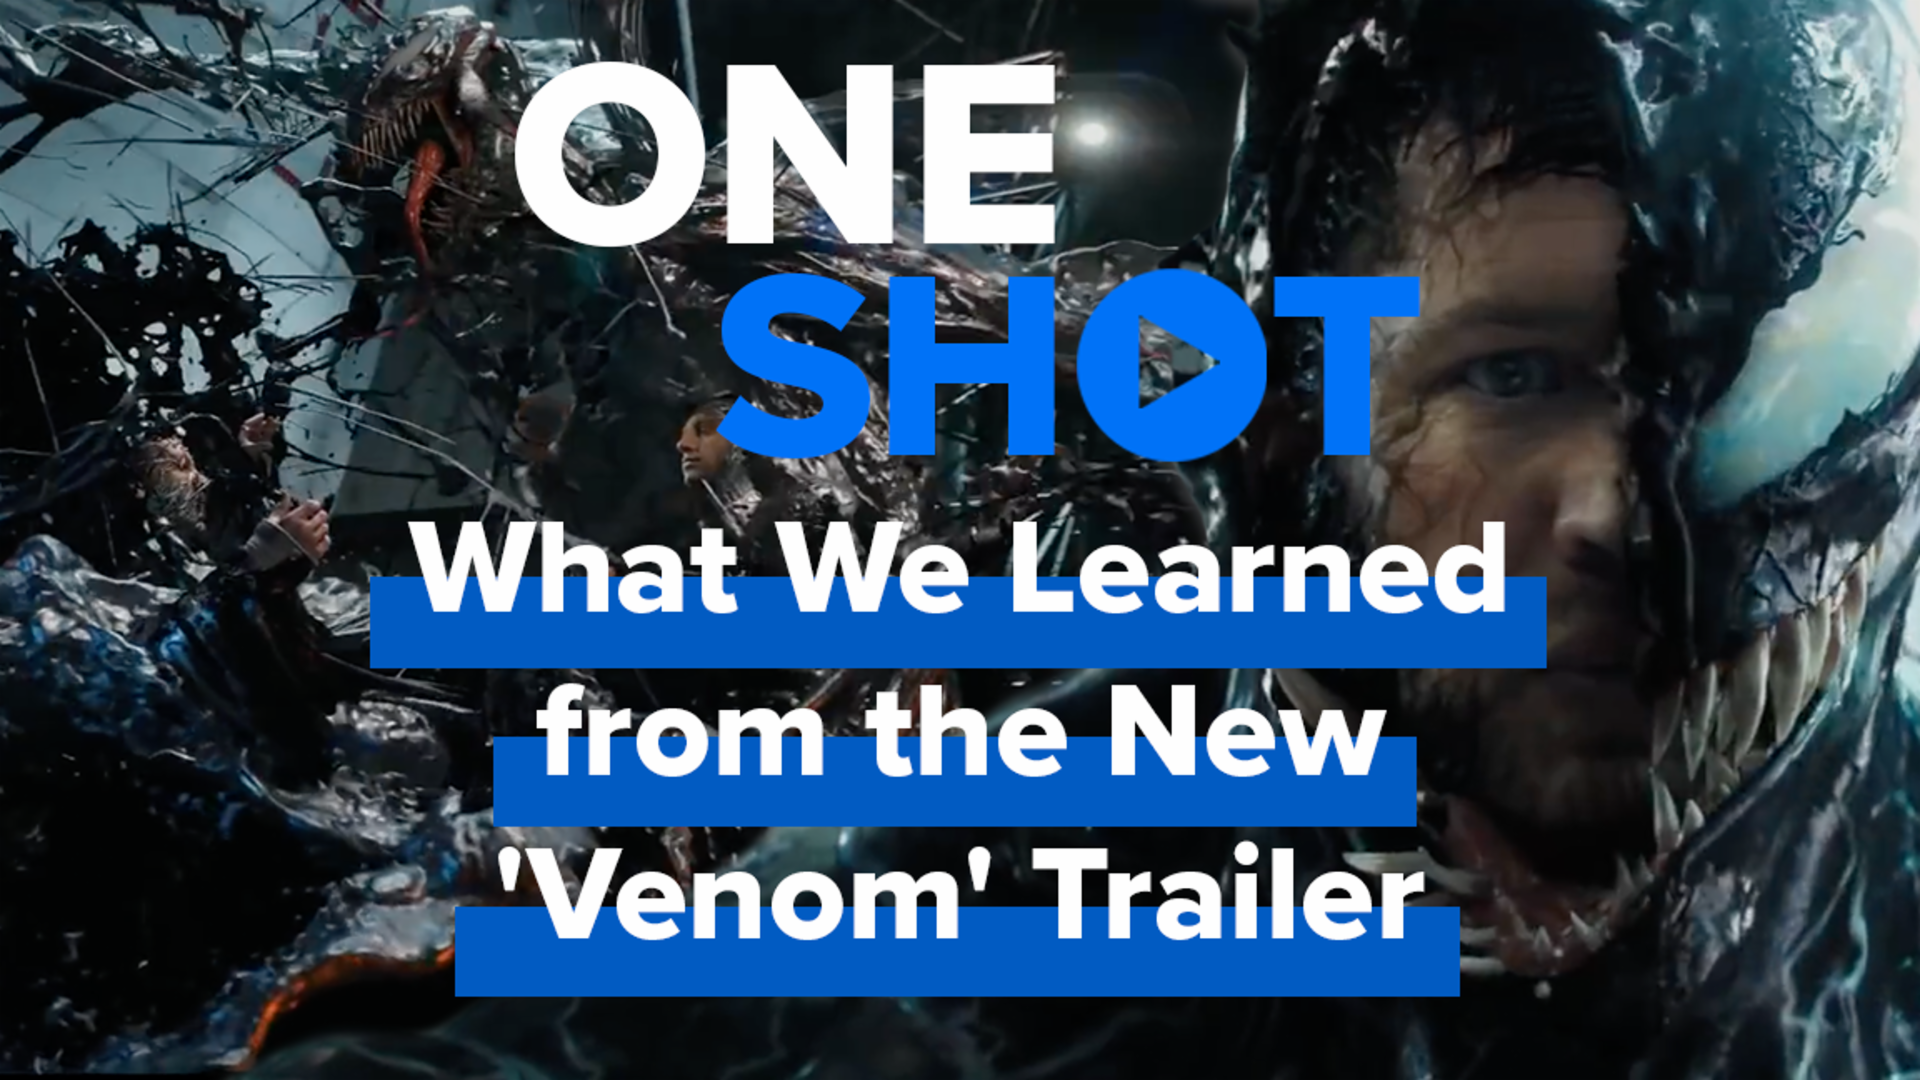 What We Learned from the New 'Venom' Trailer - One Shot screen capture